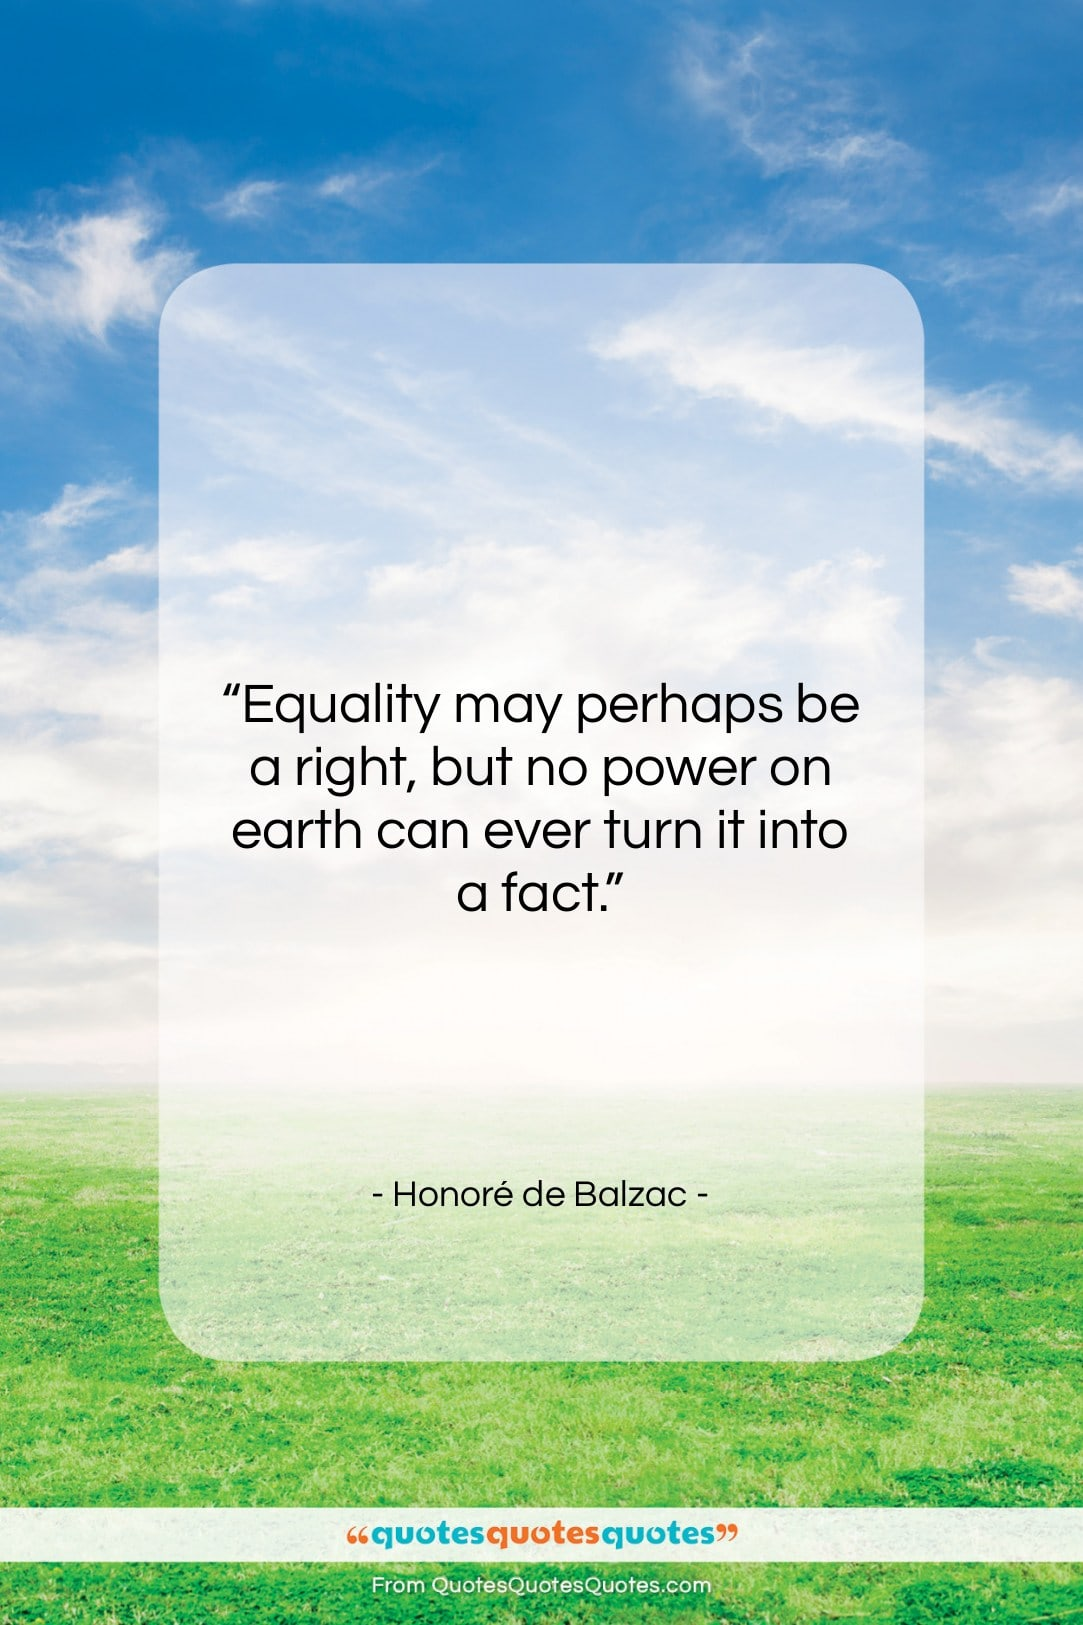 """Honoré de Balzac quote: """"Equality may perhaps be a right, but…""""- at QuotesQuotesQuotes.com"""